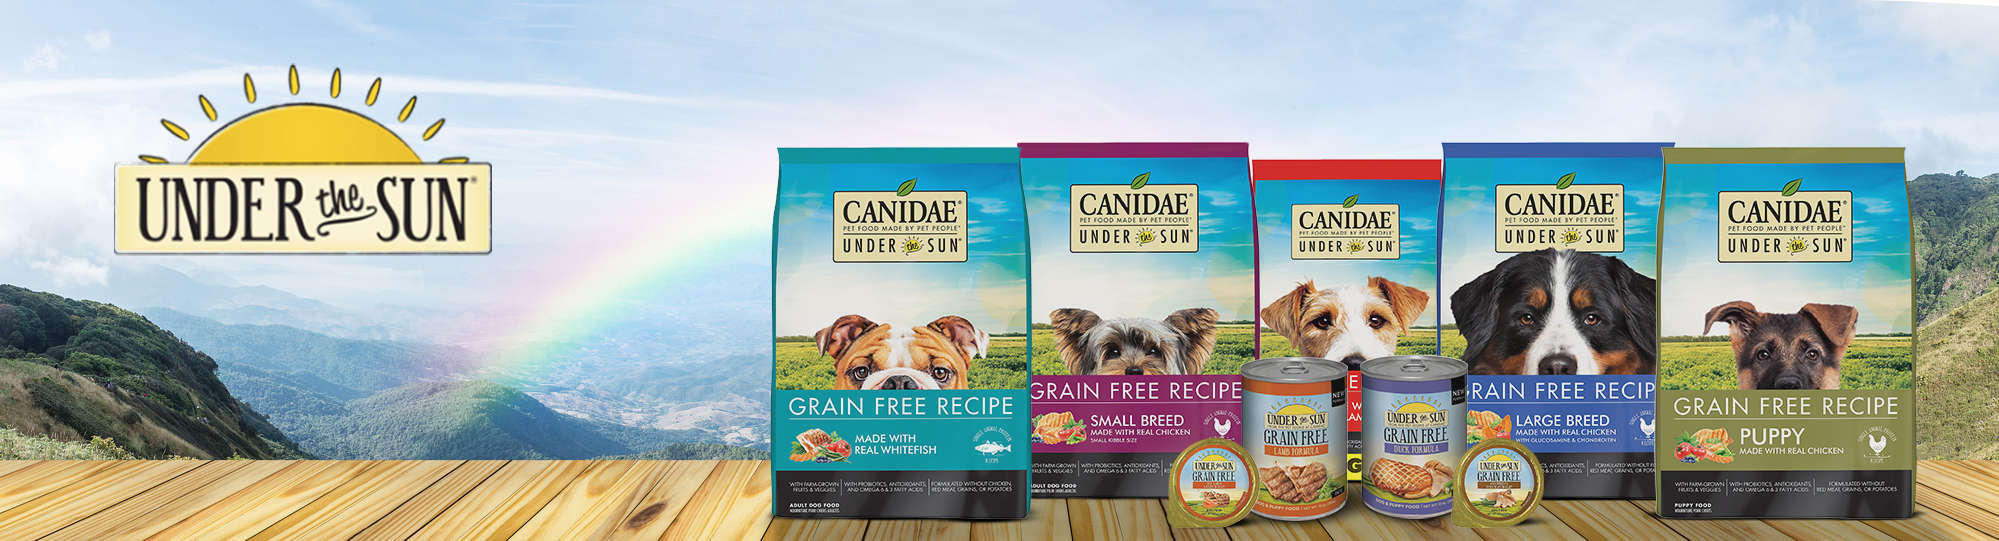 under the sun dog food reviews